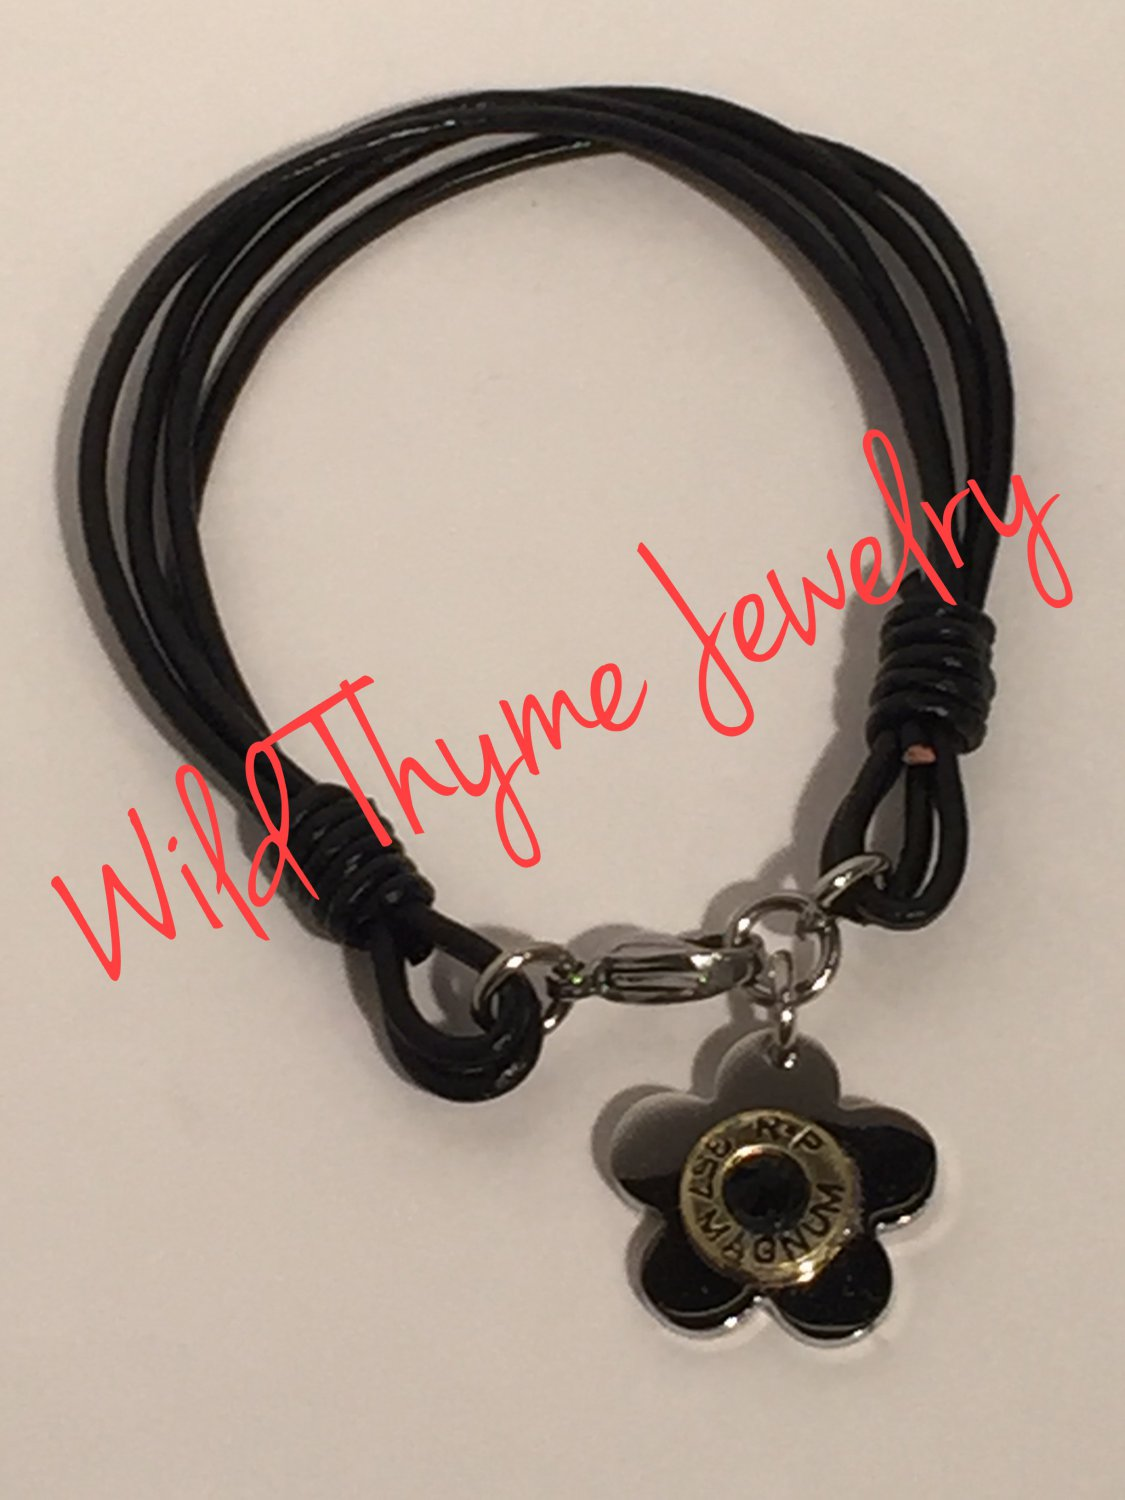 Leather bracelet with flower and bullet casing charm